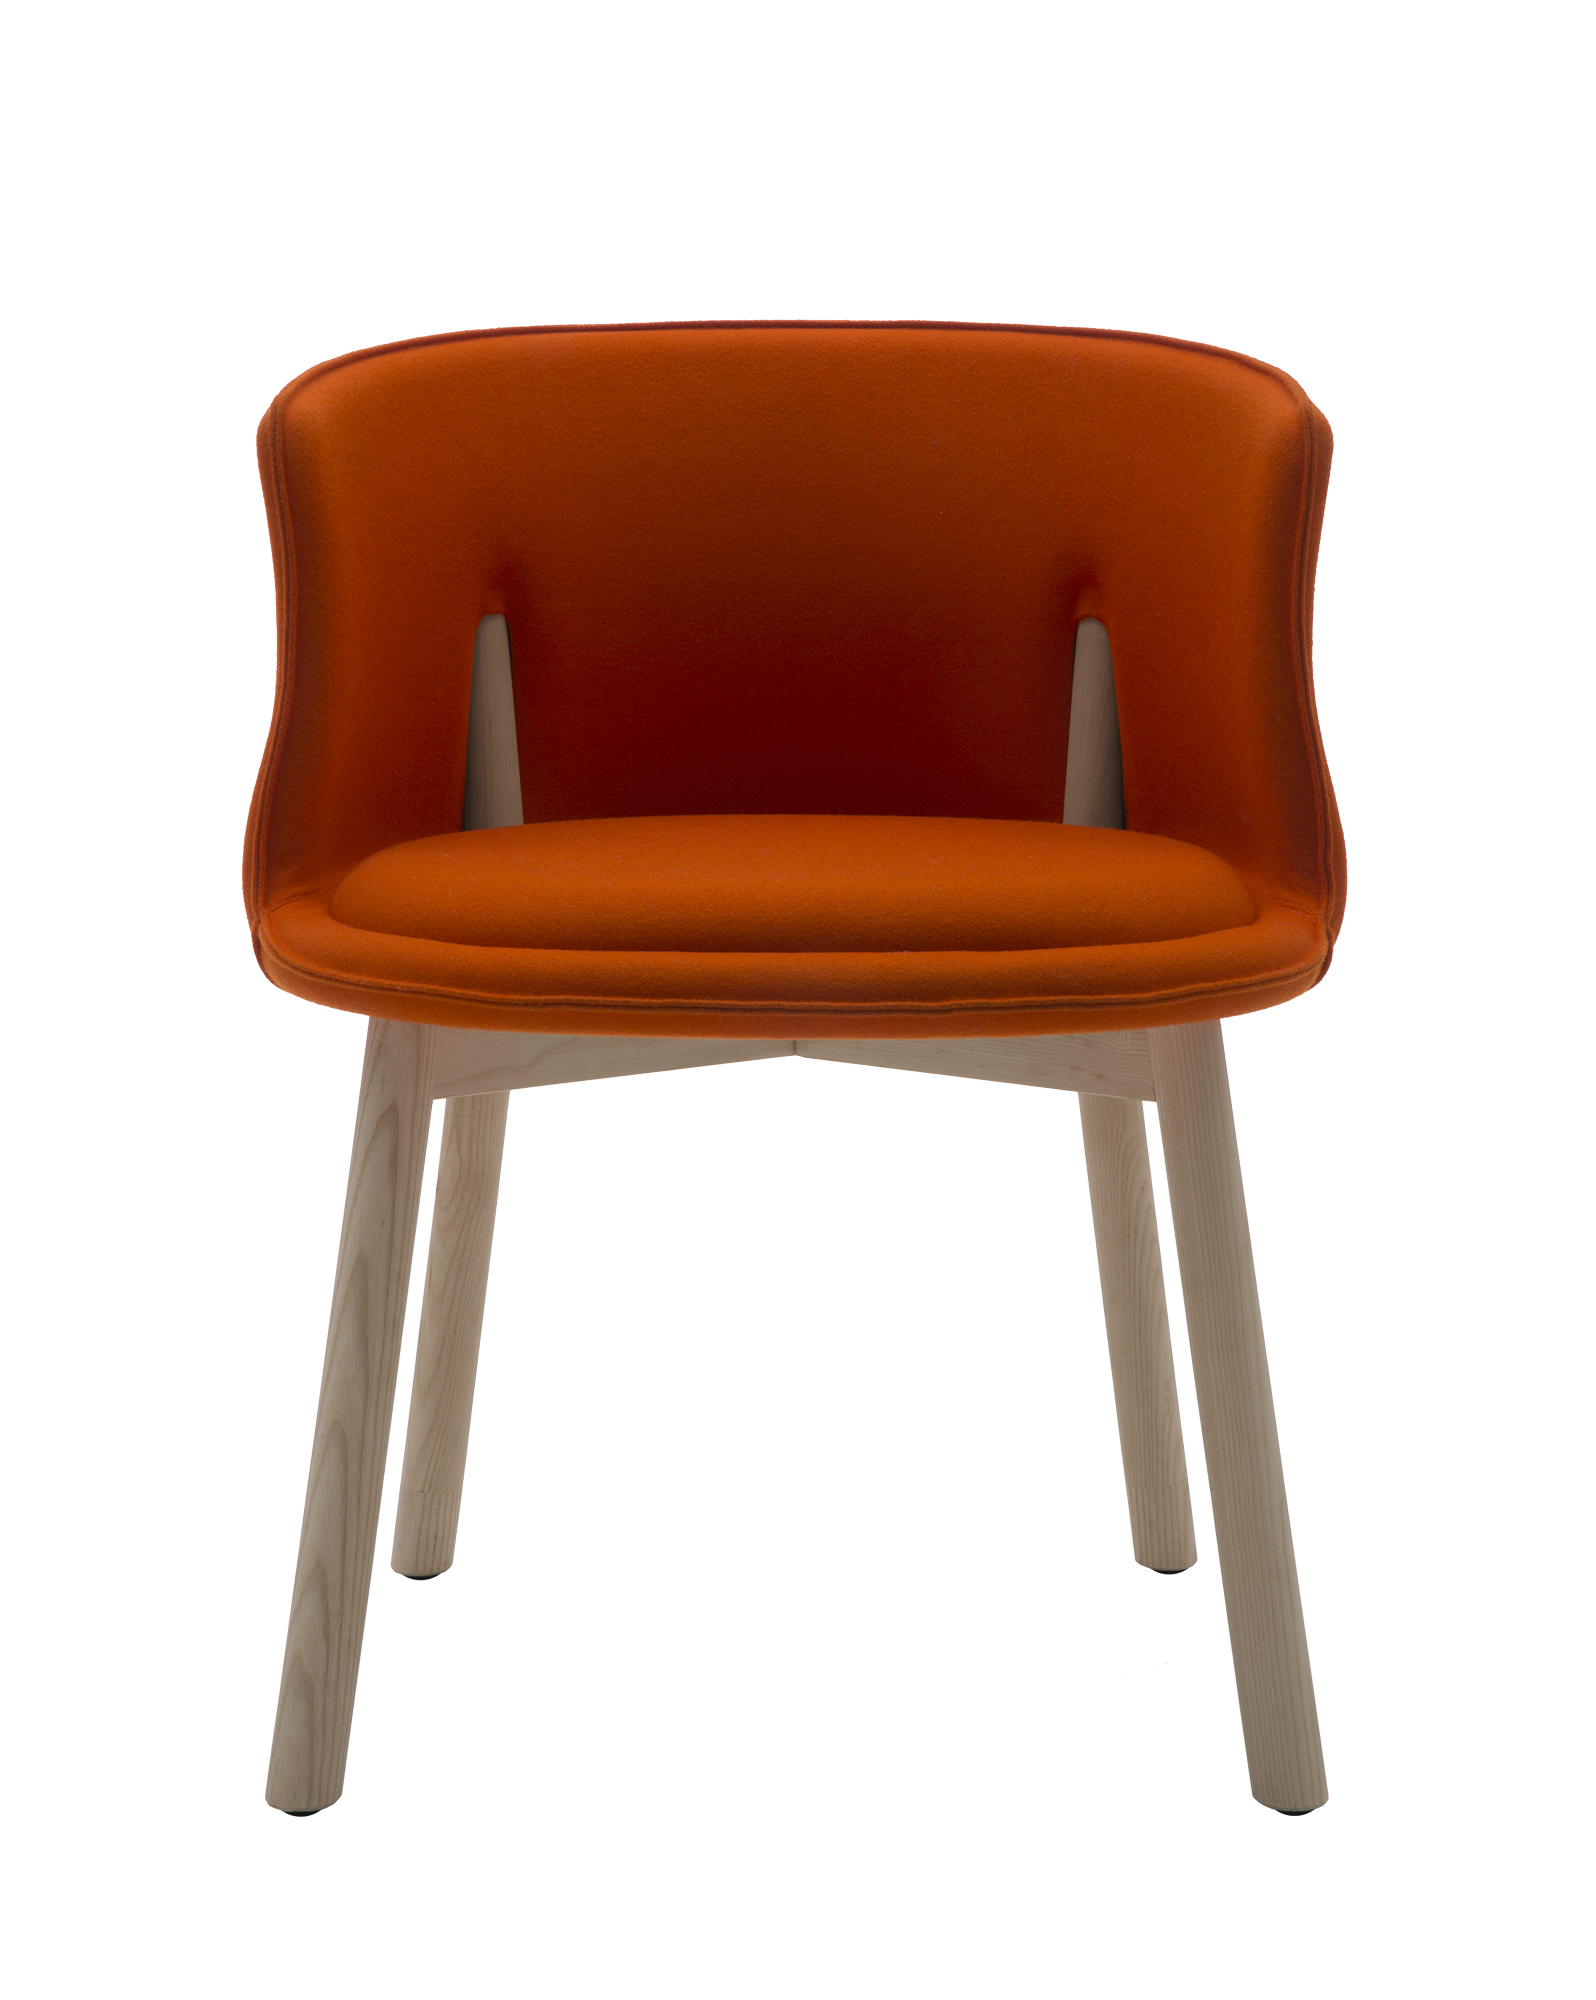 A Round Shaped Chair With Back Legs In Solid Ash Wood That Pierce The Sides Of The Backrest Which Provides Support For The Back And Desp Swivel Dining Chairs Chair Chair